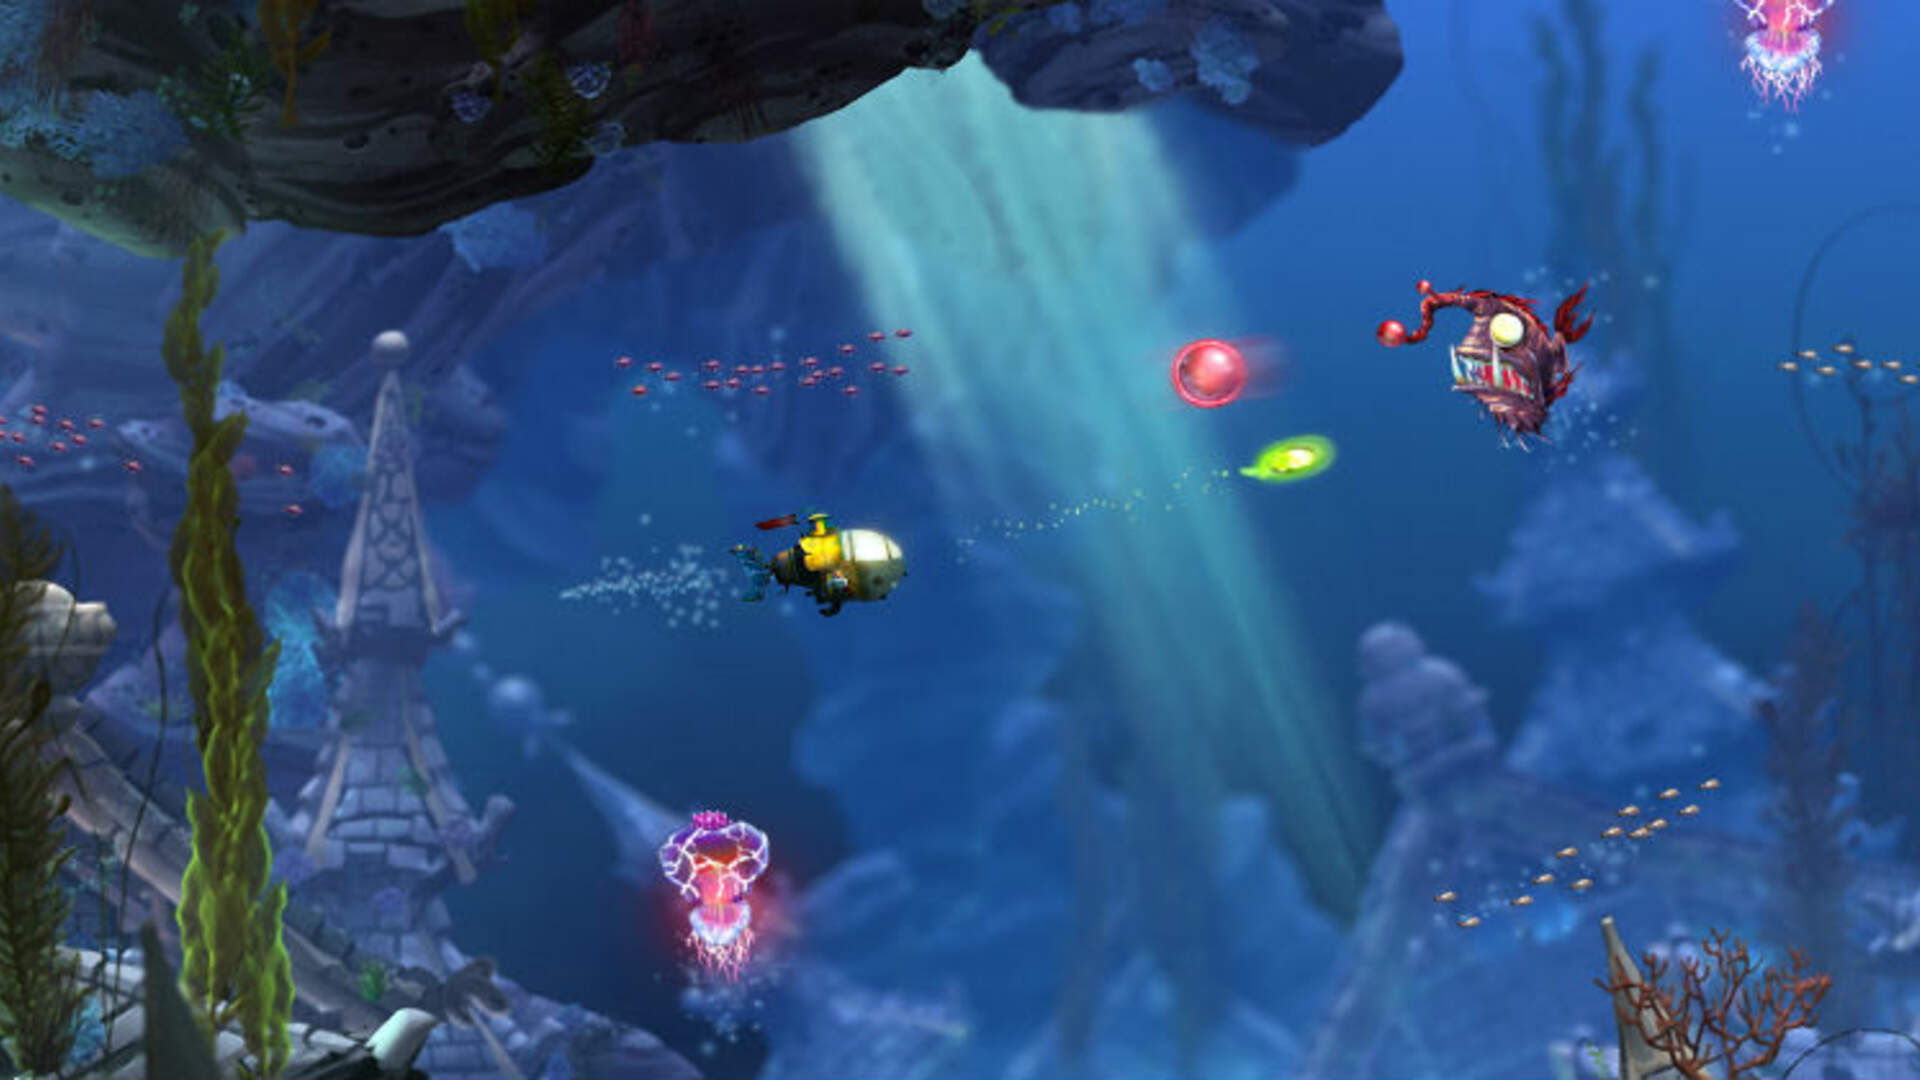 Insomniac Games' New Title, Song of the Deep, is Being Published by GameStop